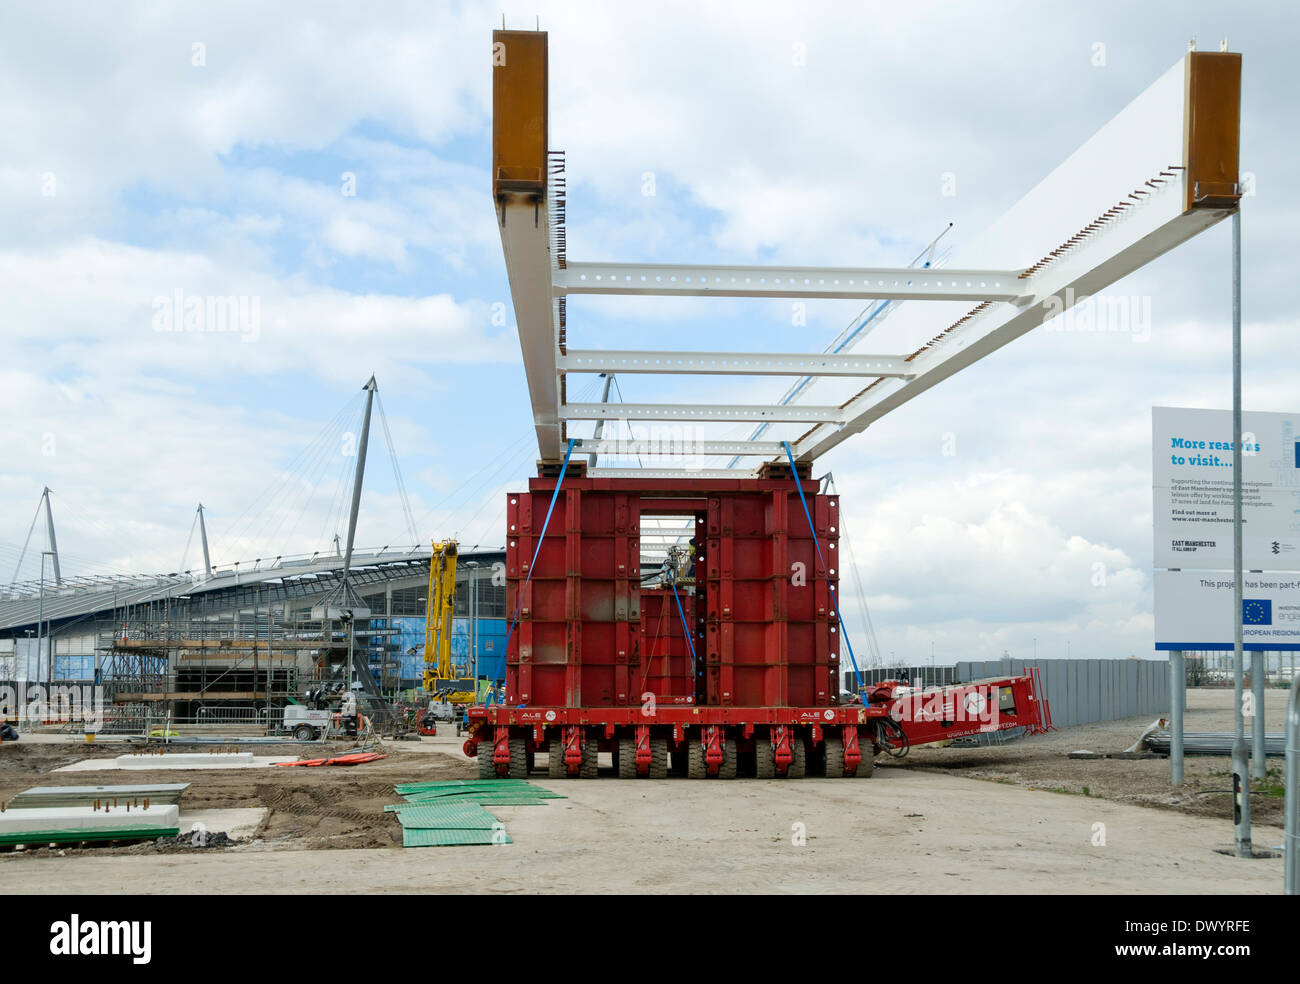 Etihad Campus footbridge about to be moved into position supported on multi-wheeled transporters, Manchester, England, UK - Stock Image